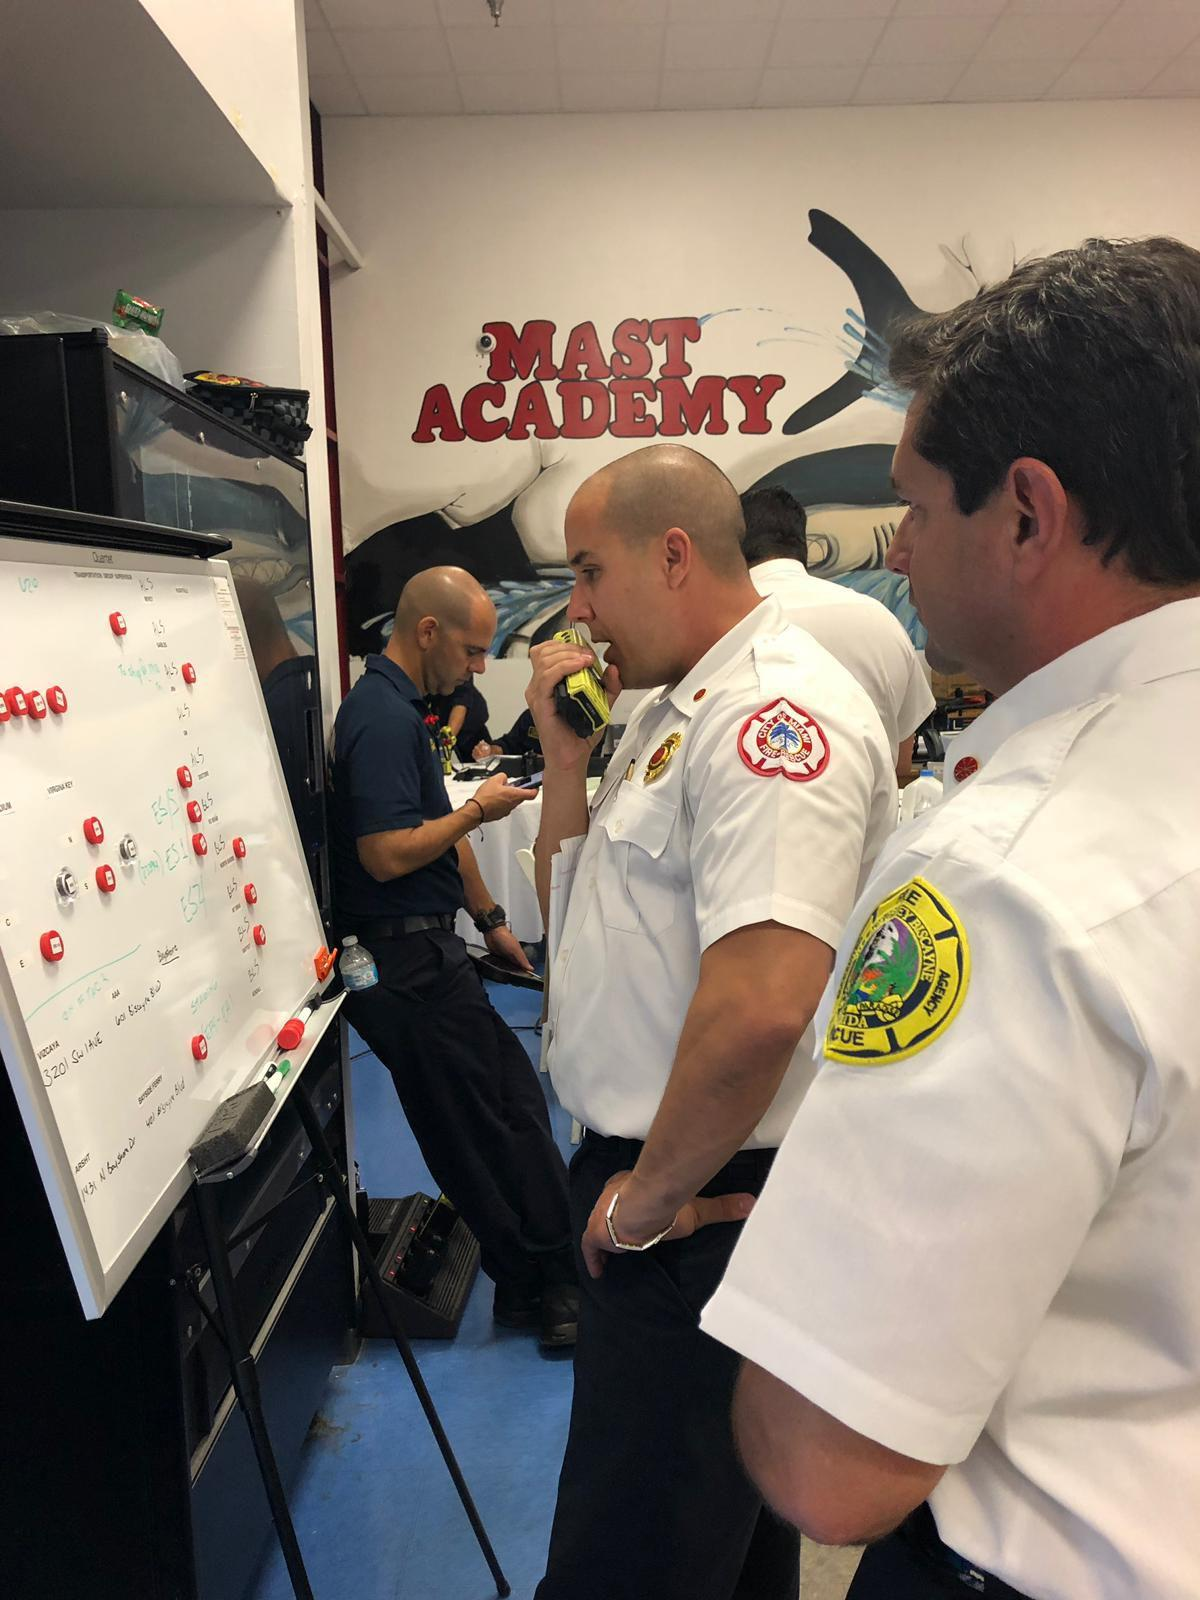 Deputy Chief Osorio at the Unified Command Post at Mast Academy.